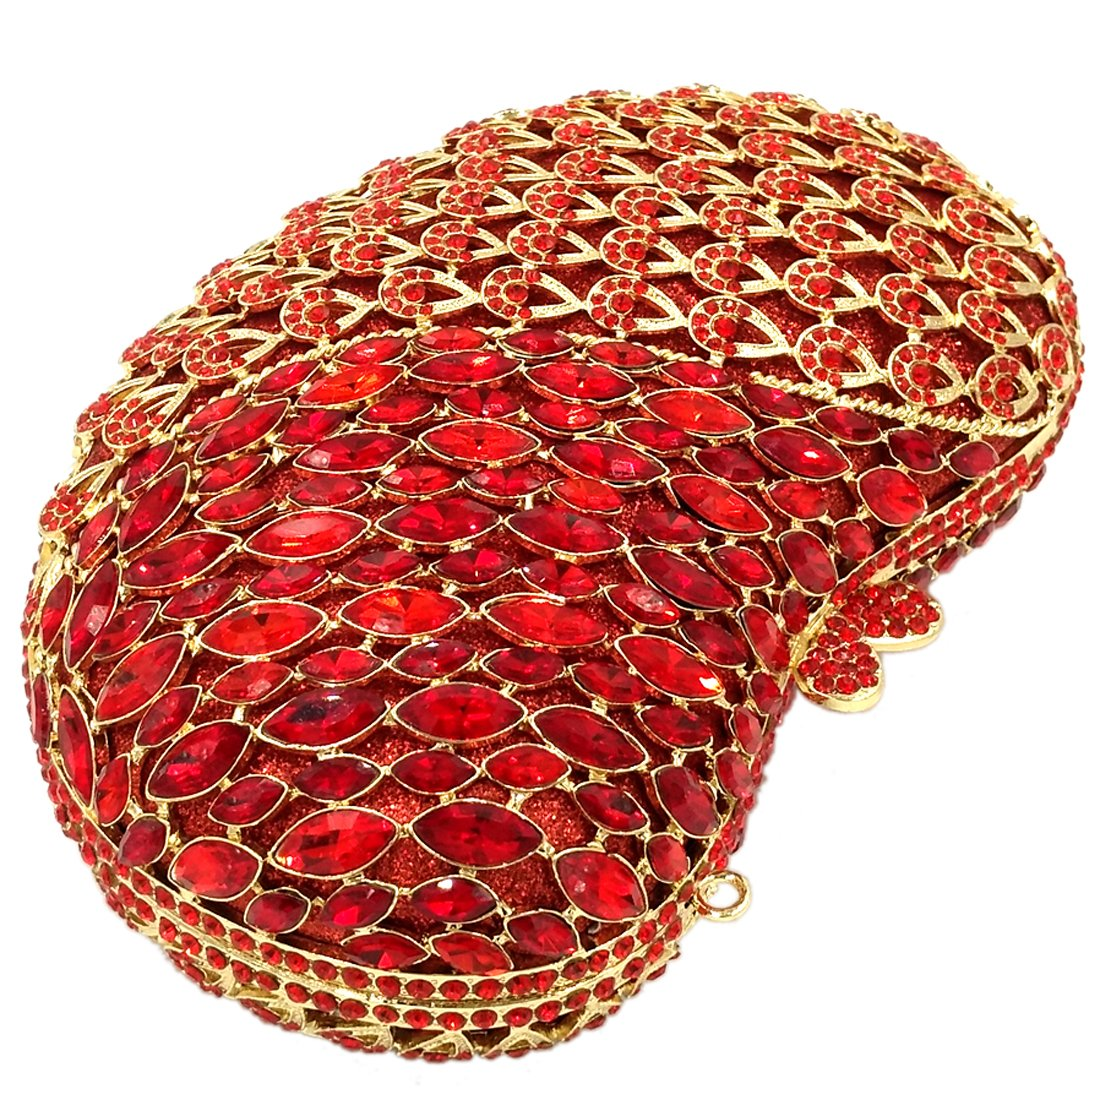 Amazon.com: Elegant Evening Bags For Womens Clutches Purse Chain Wallet Handbags Crystal Party Apple Red: Clothing